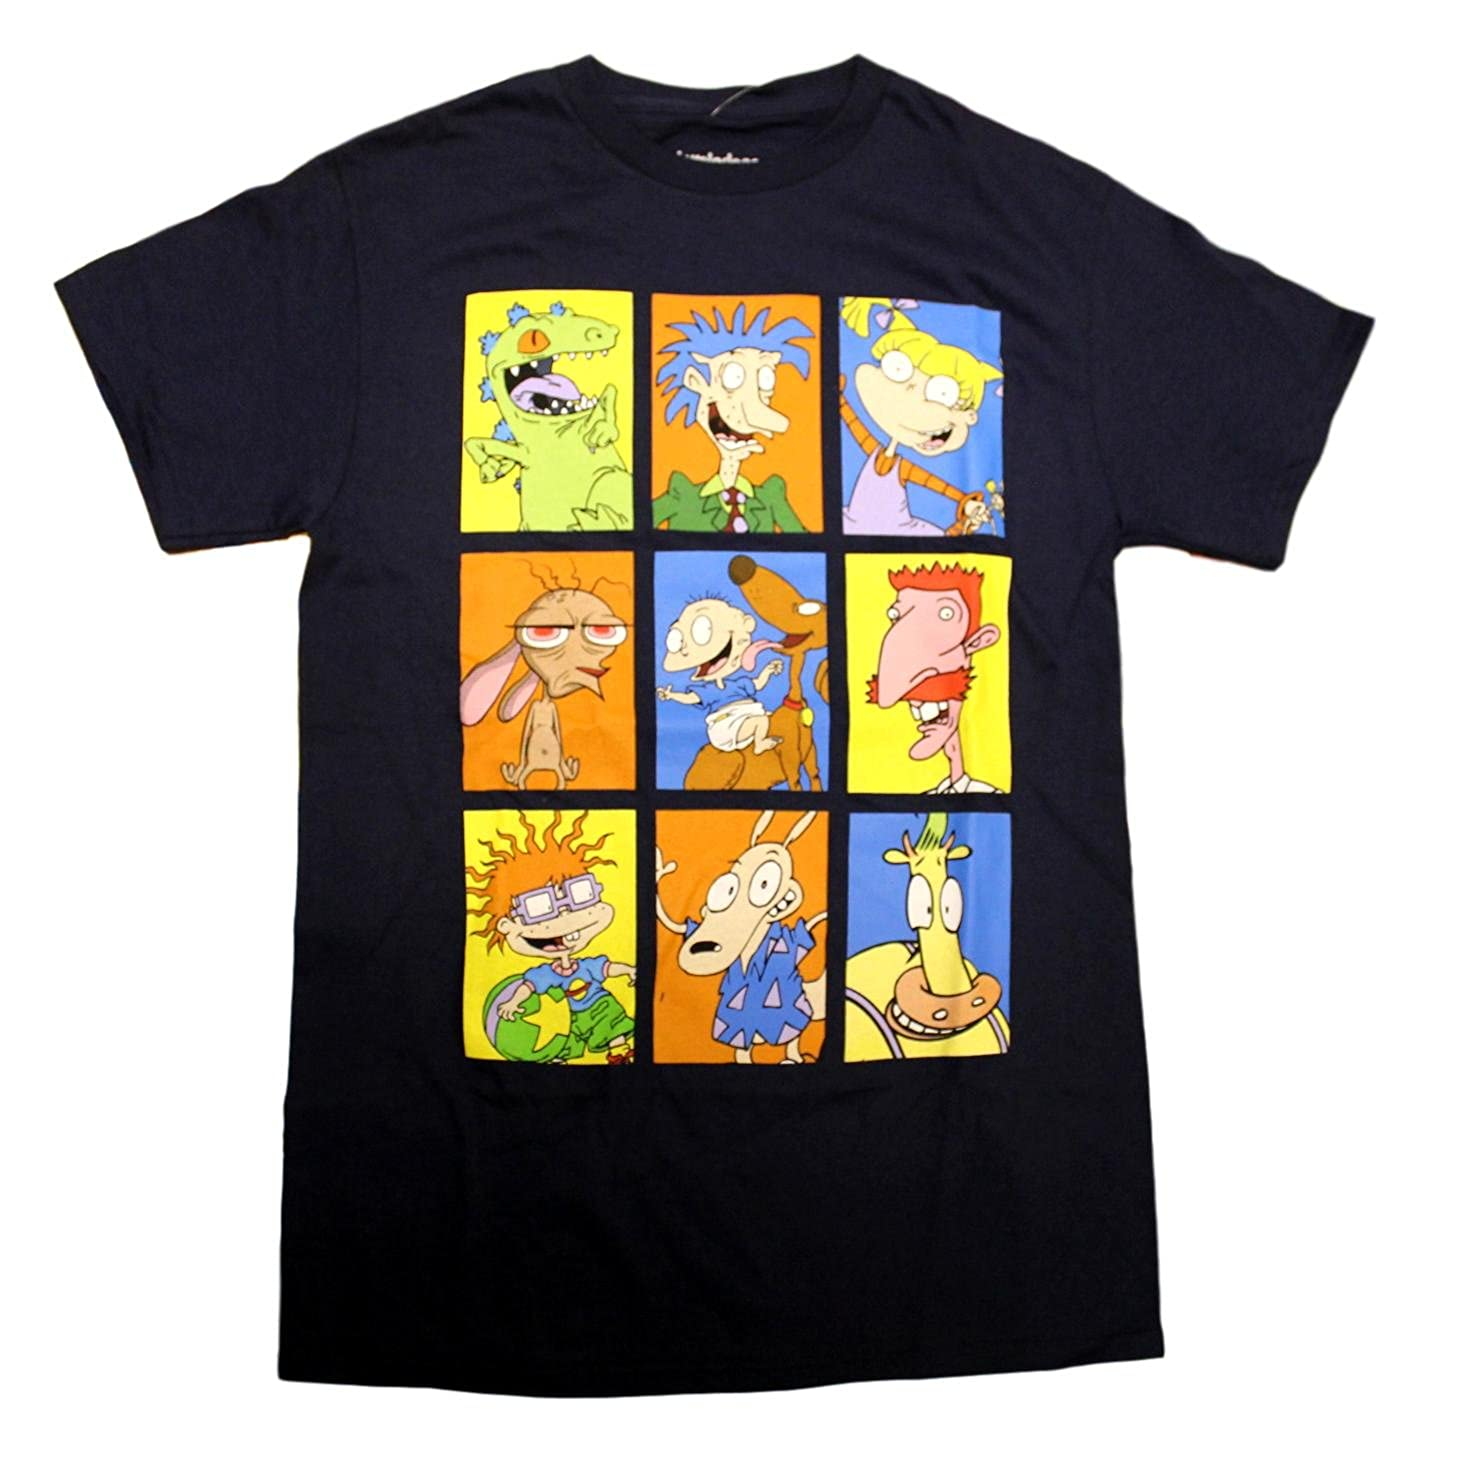 af05948c3e84 Amazon.com  Nickelodeon Mens The Faces Of Rugrats Graphic T-Shirt - X-Large  46 48  Clothing